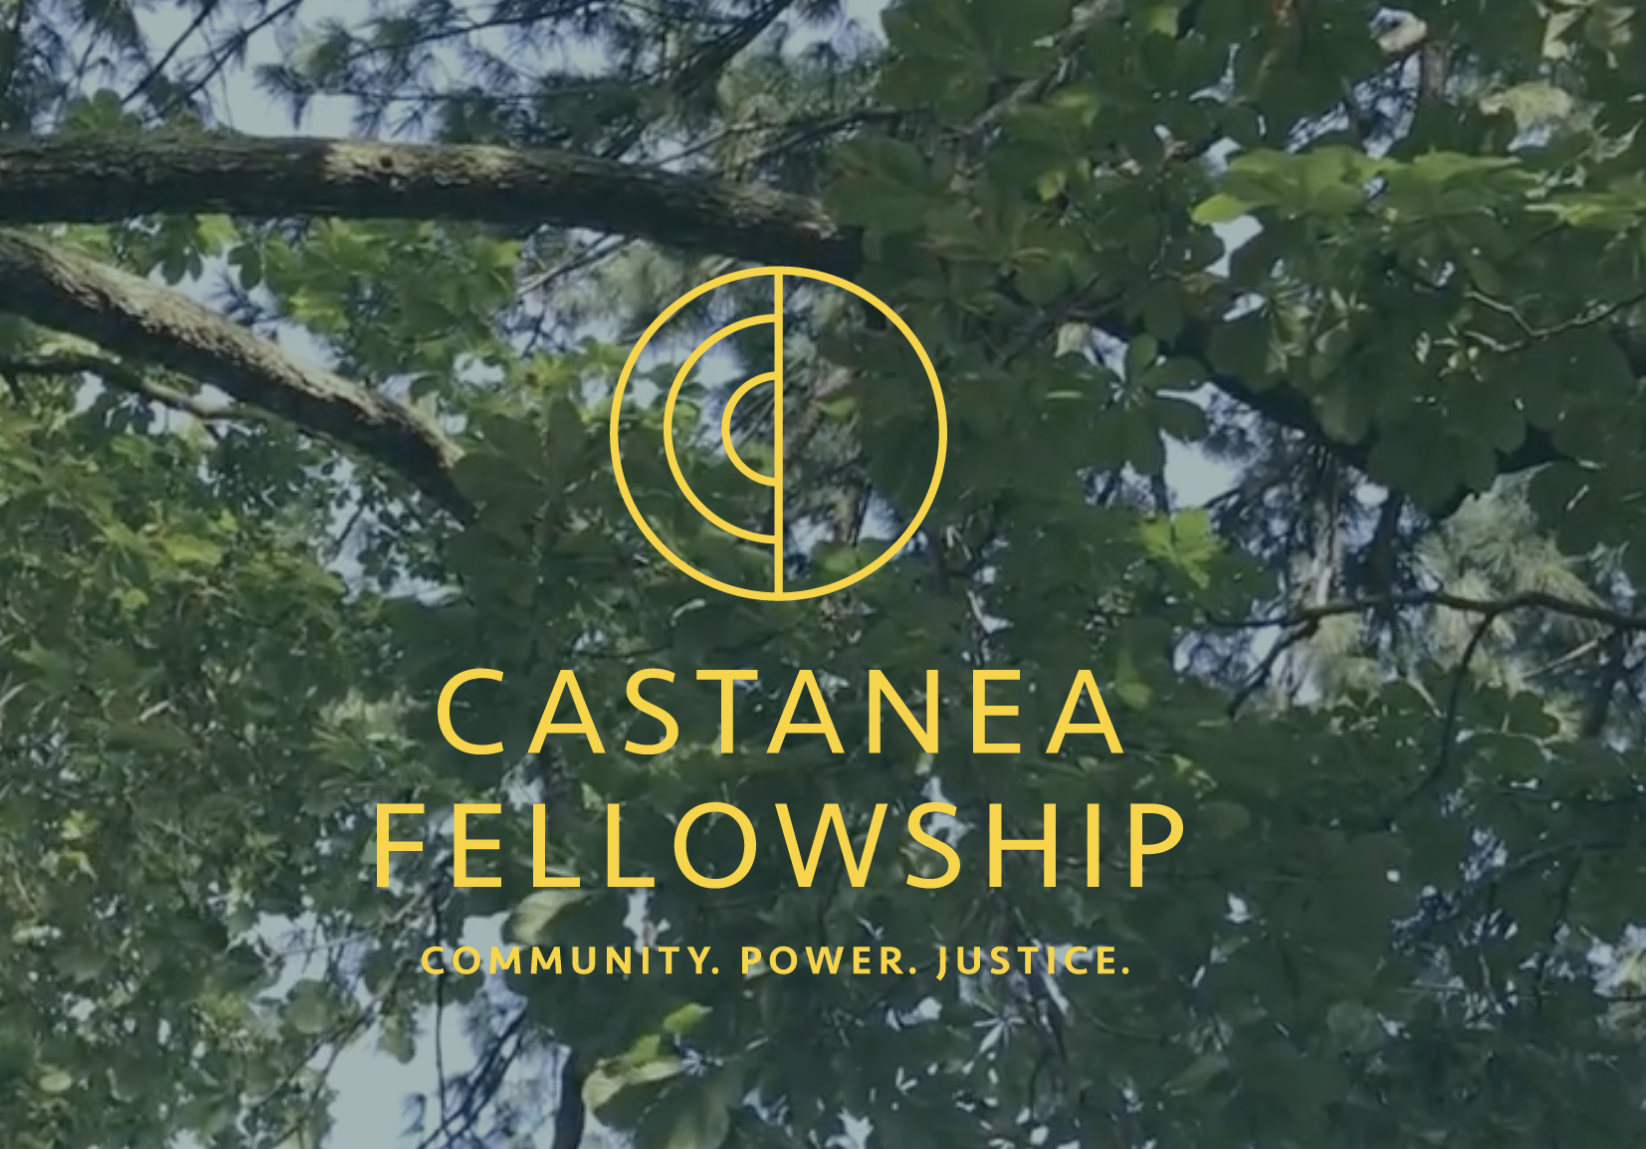 New Fellowship for Mid-Career Food Systems Professionals